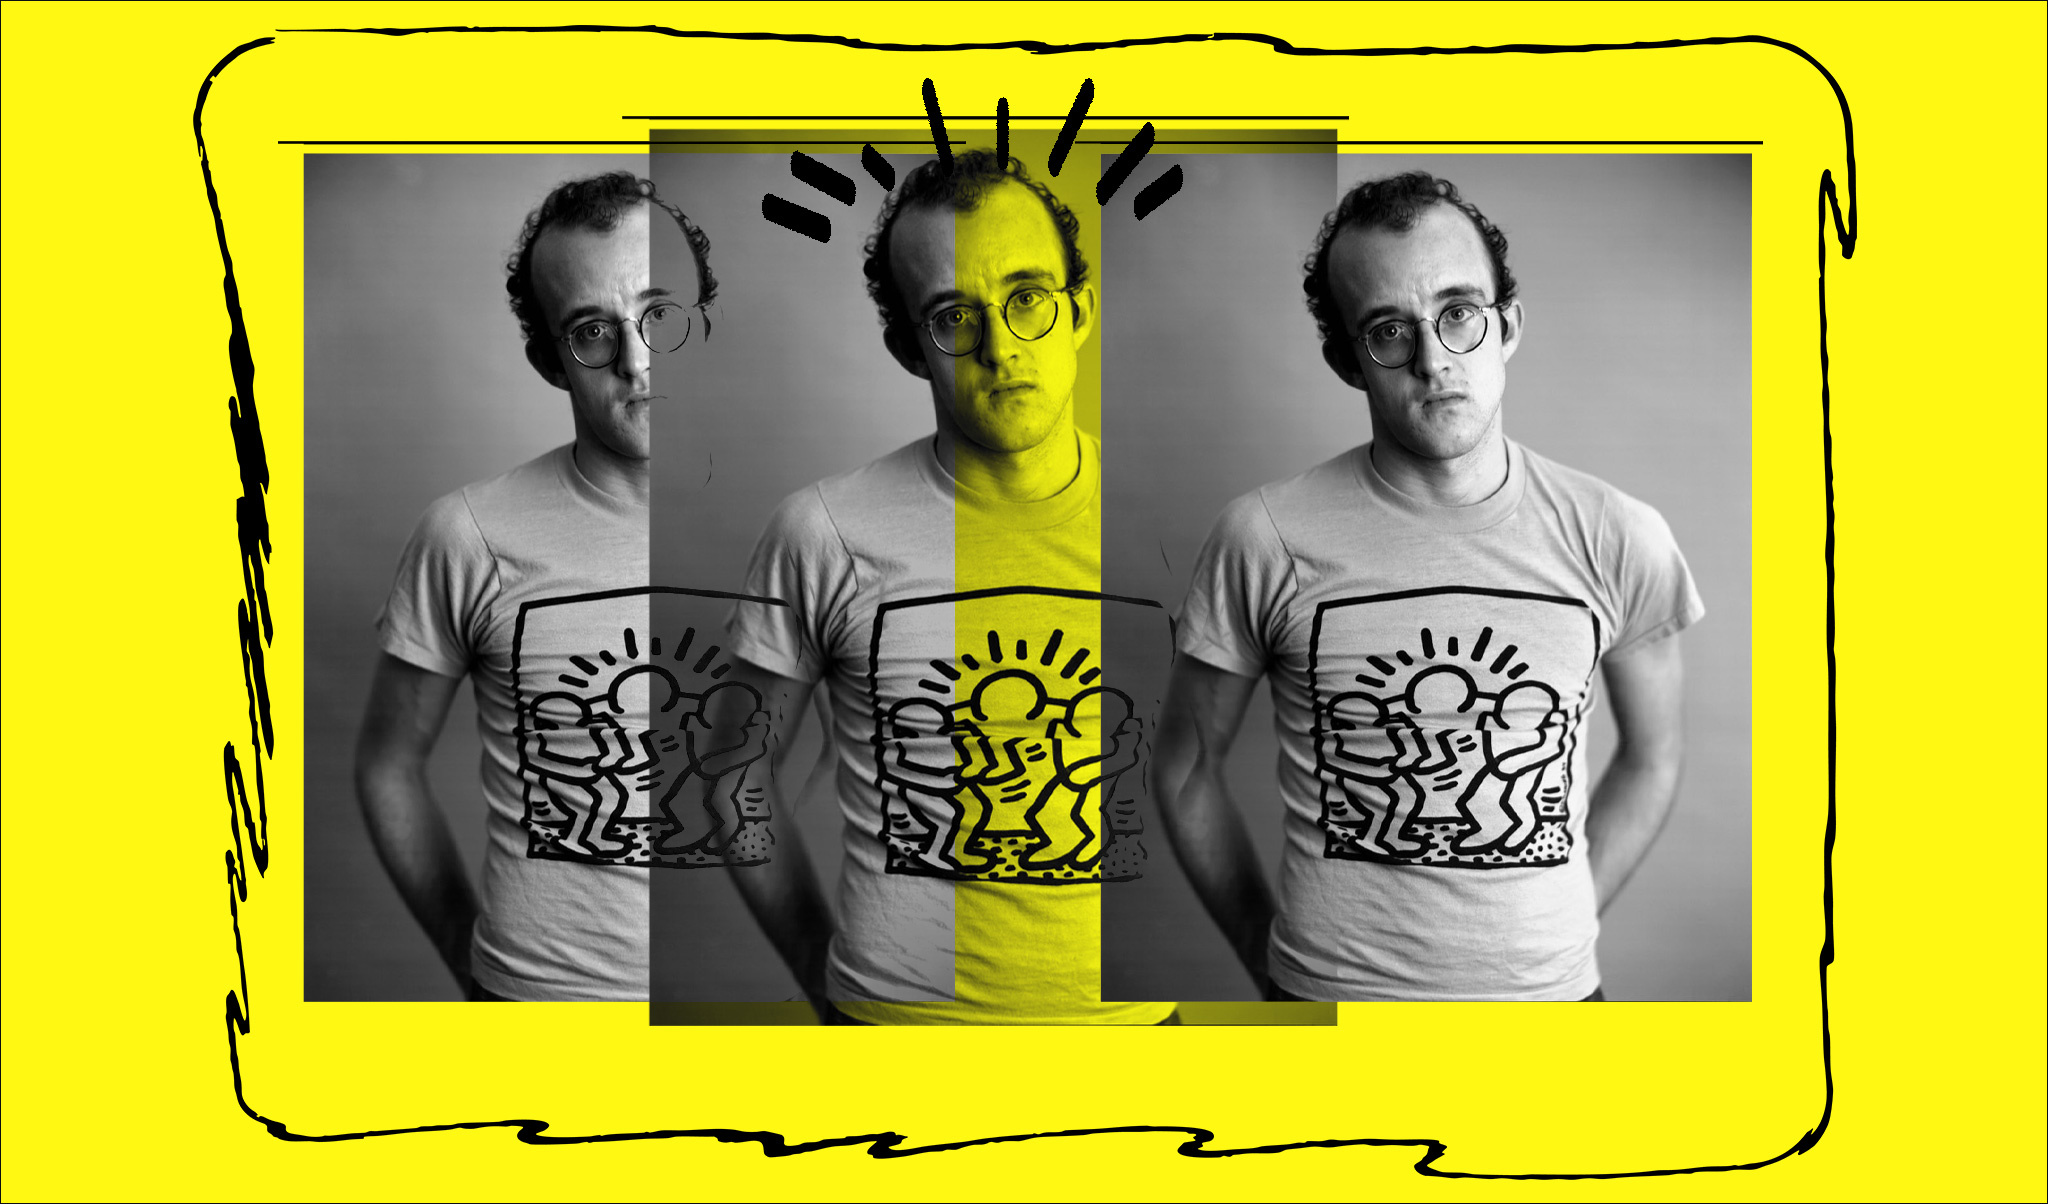 TRIBUTE: Keith Haring